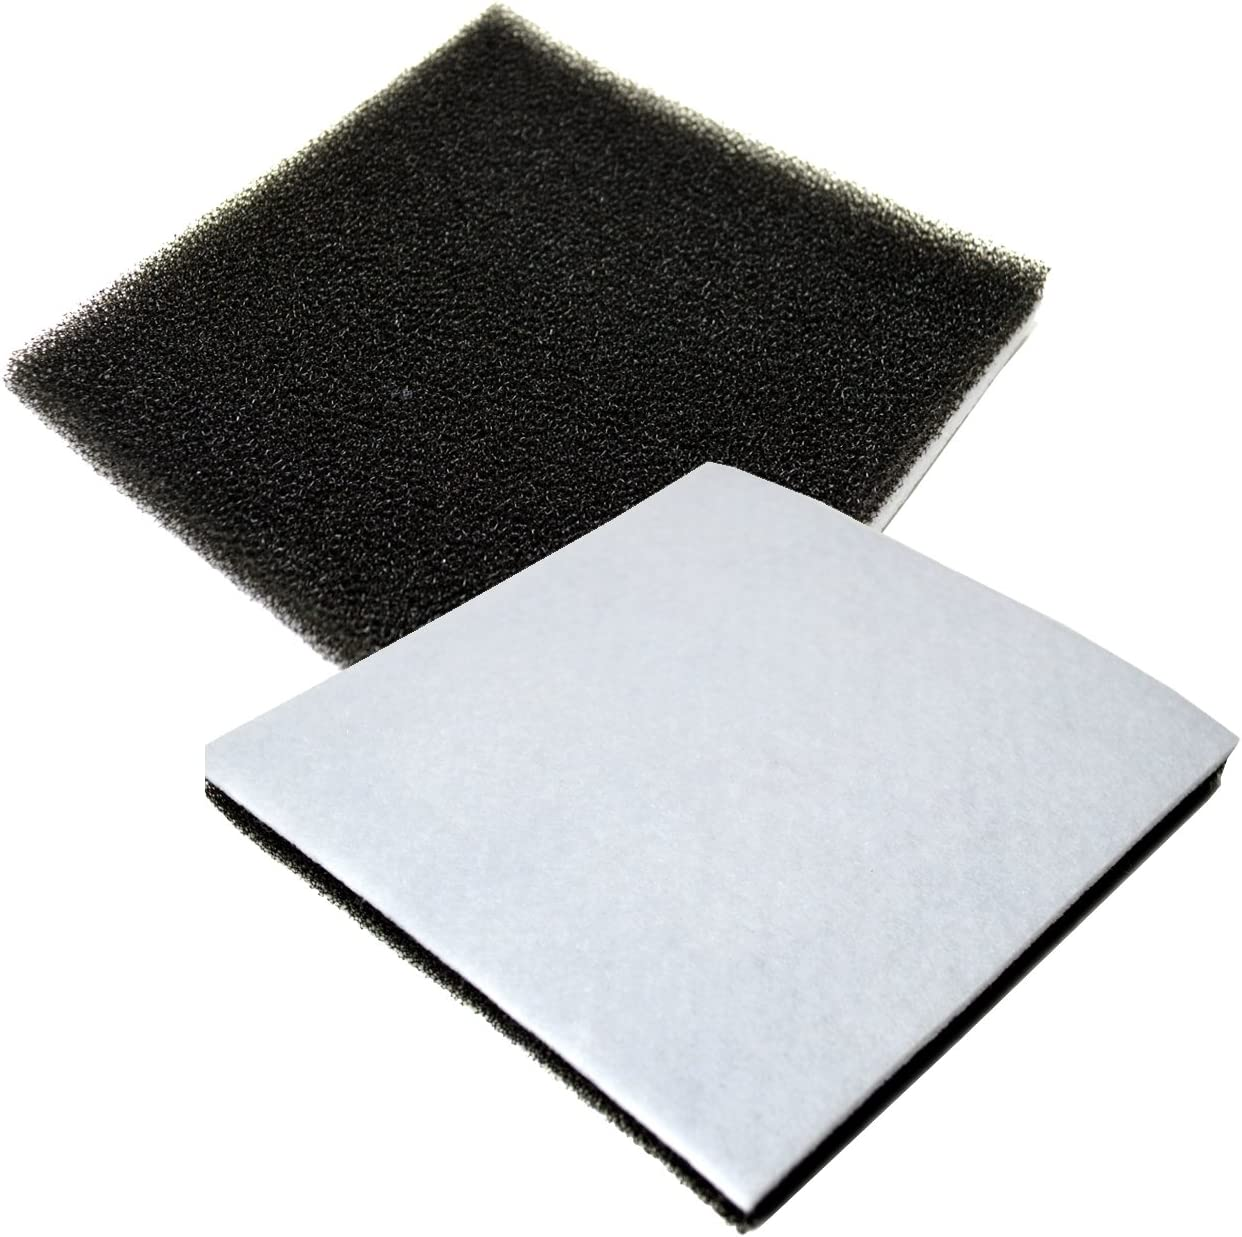 HQRP 2-Pack Foam Filter New sales for Kenmore CF-1 86883 Sears Recommended CF1 20-8